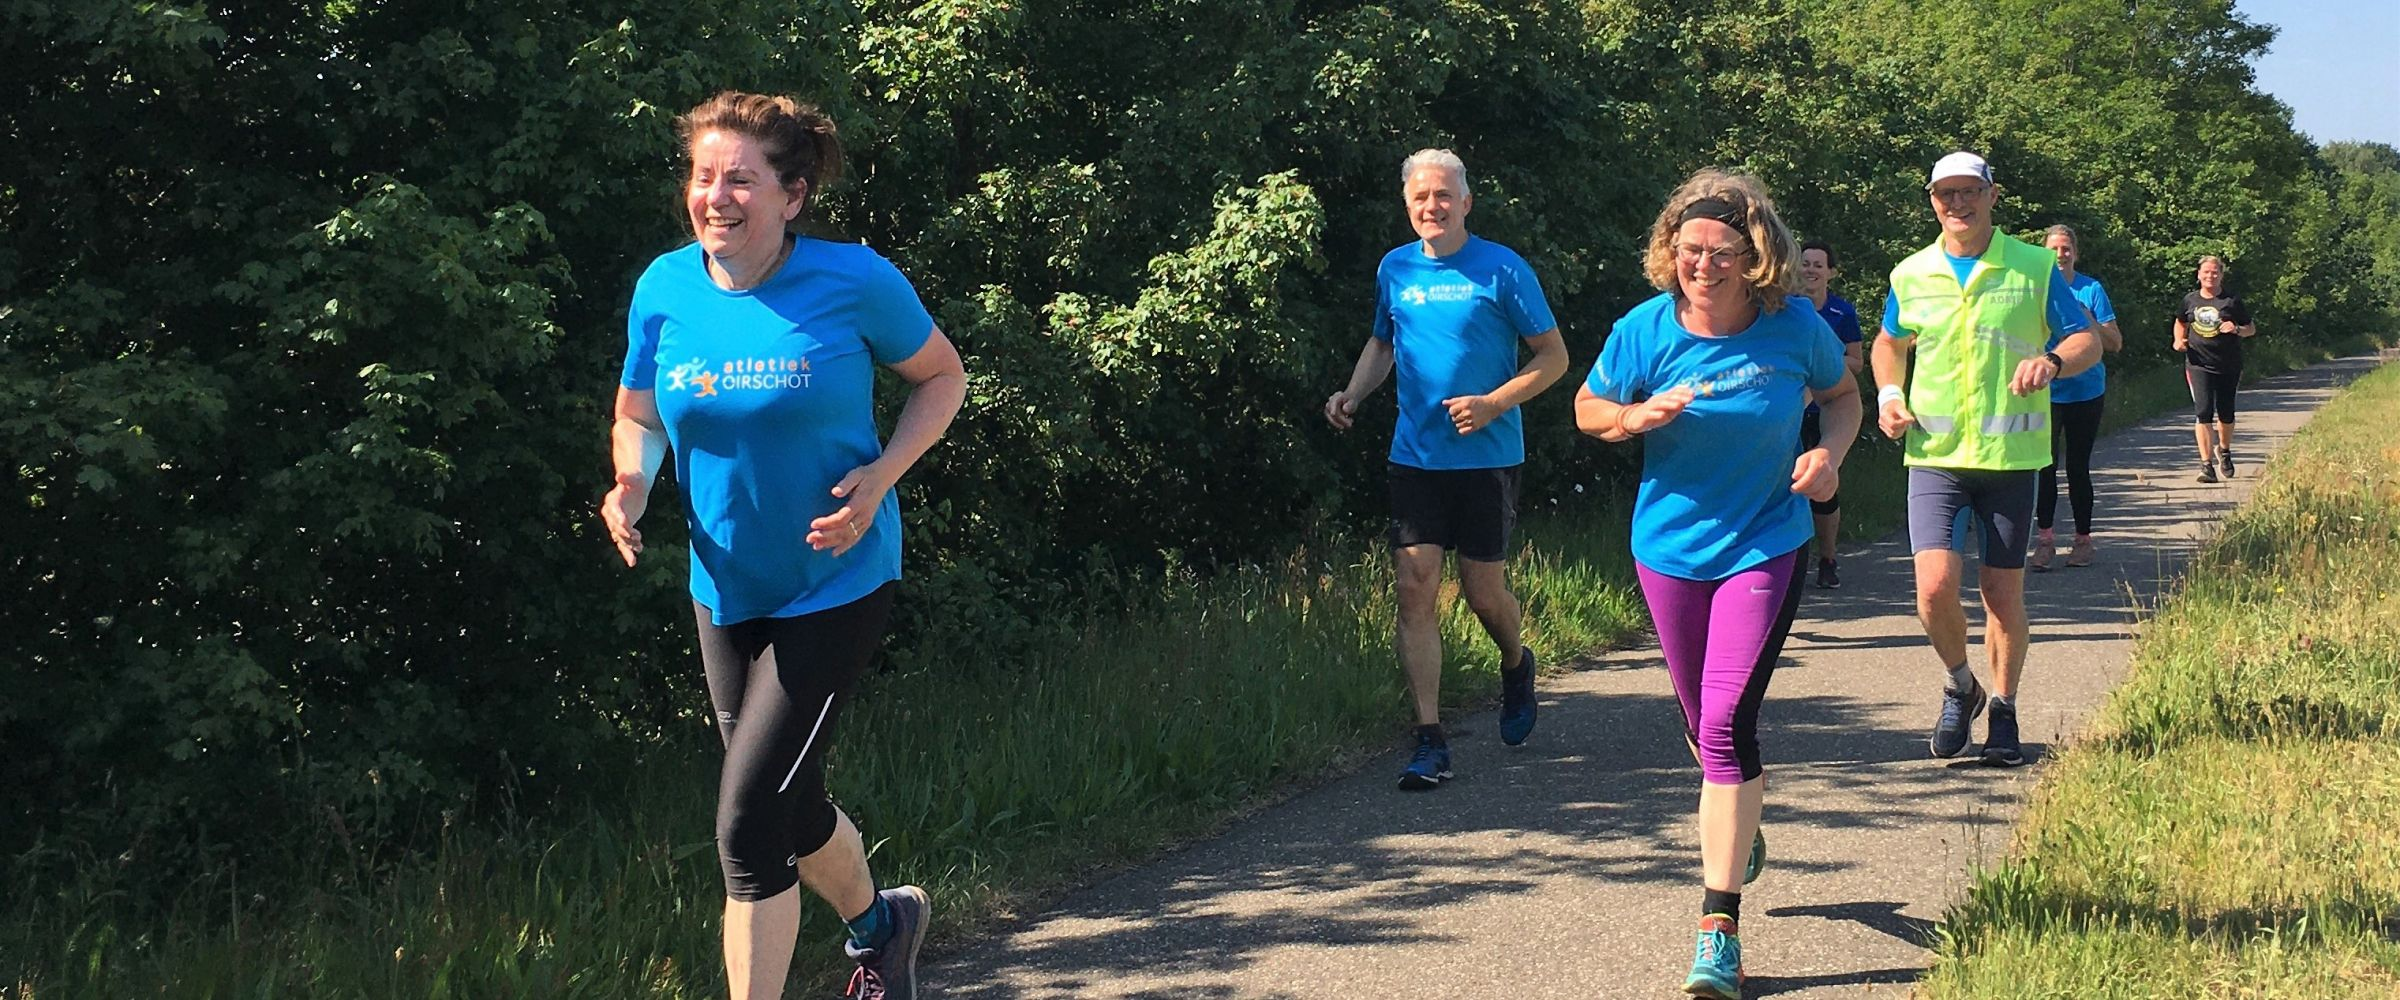 2020-05/2020-05-17-recreanten-ad-van-zelst-35-